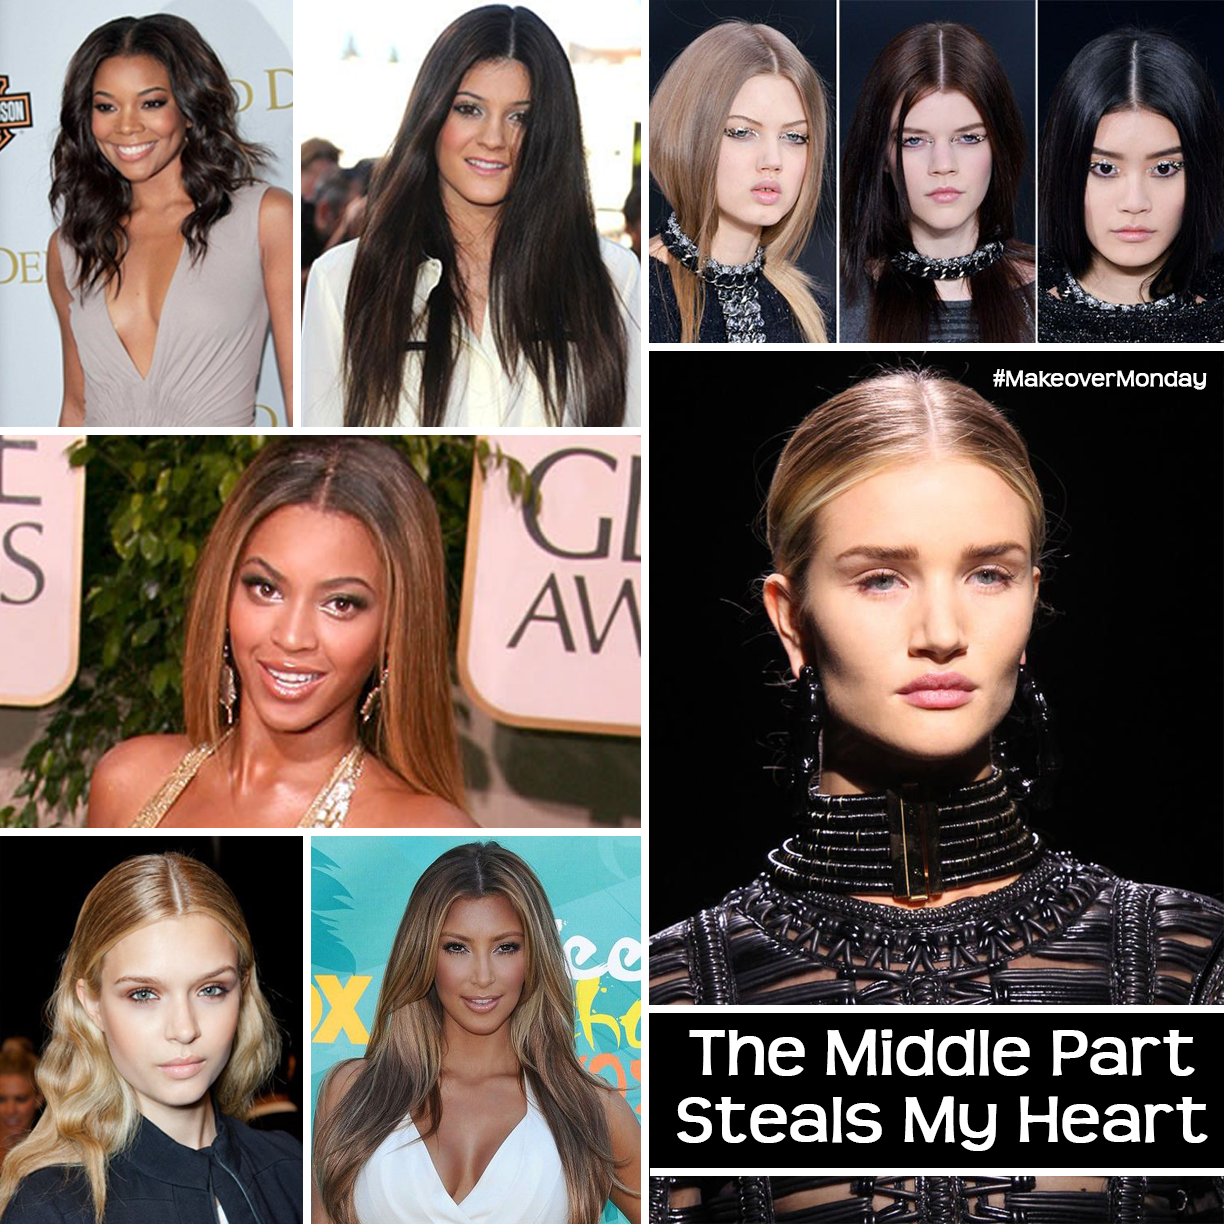 middle part, kim kardashian, jenner, Gabrielle union, hair trends, long hair, fashion, the luxe gen